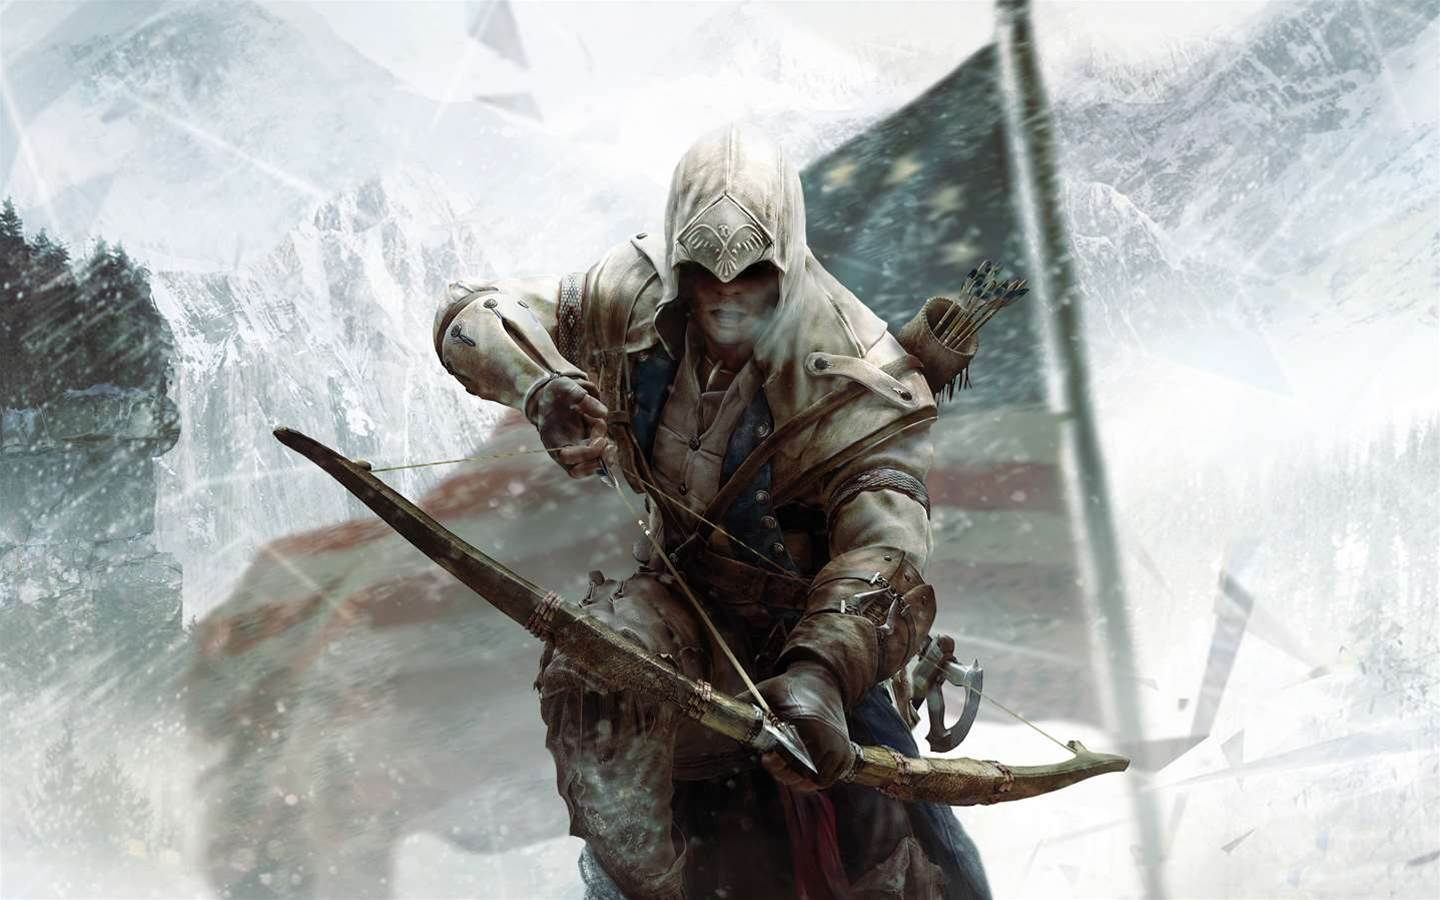 Assassin's Creed III takes a turn for the serious in a live-action trailer